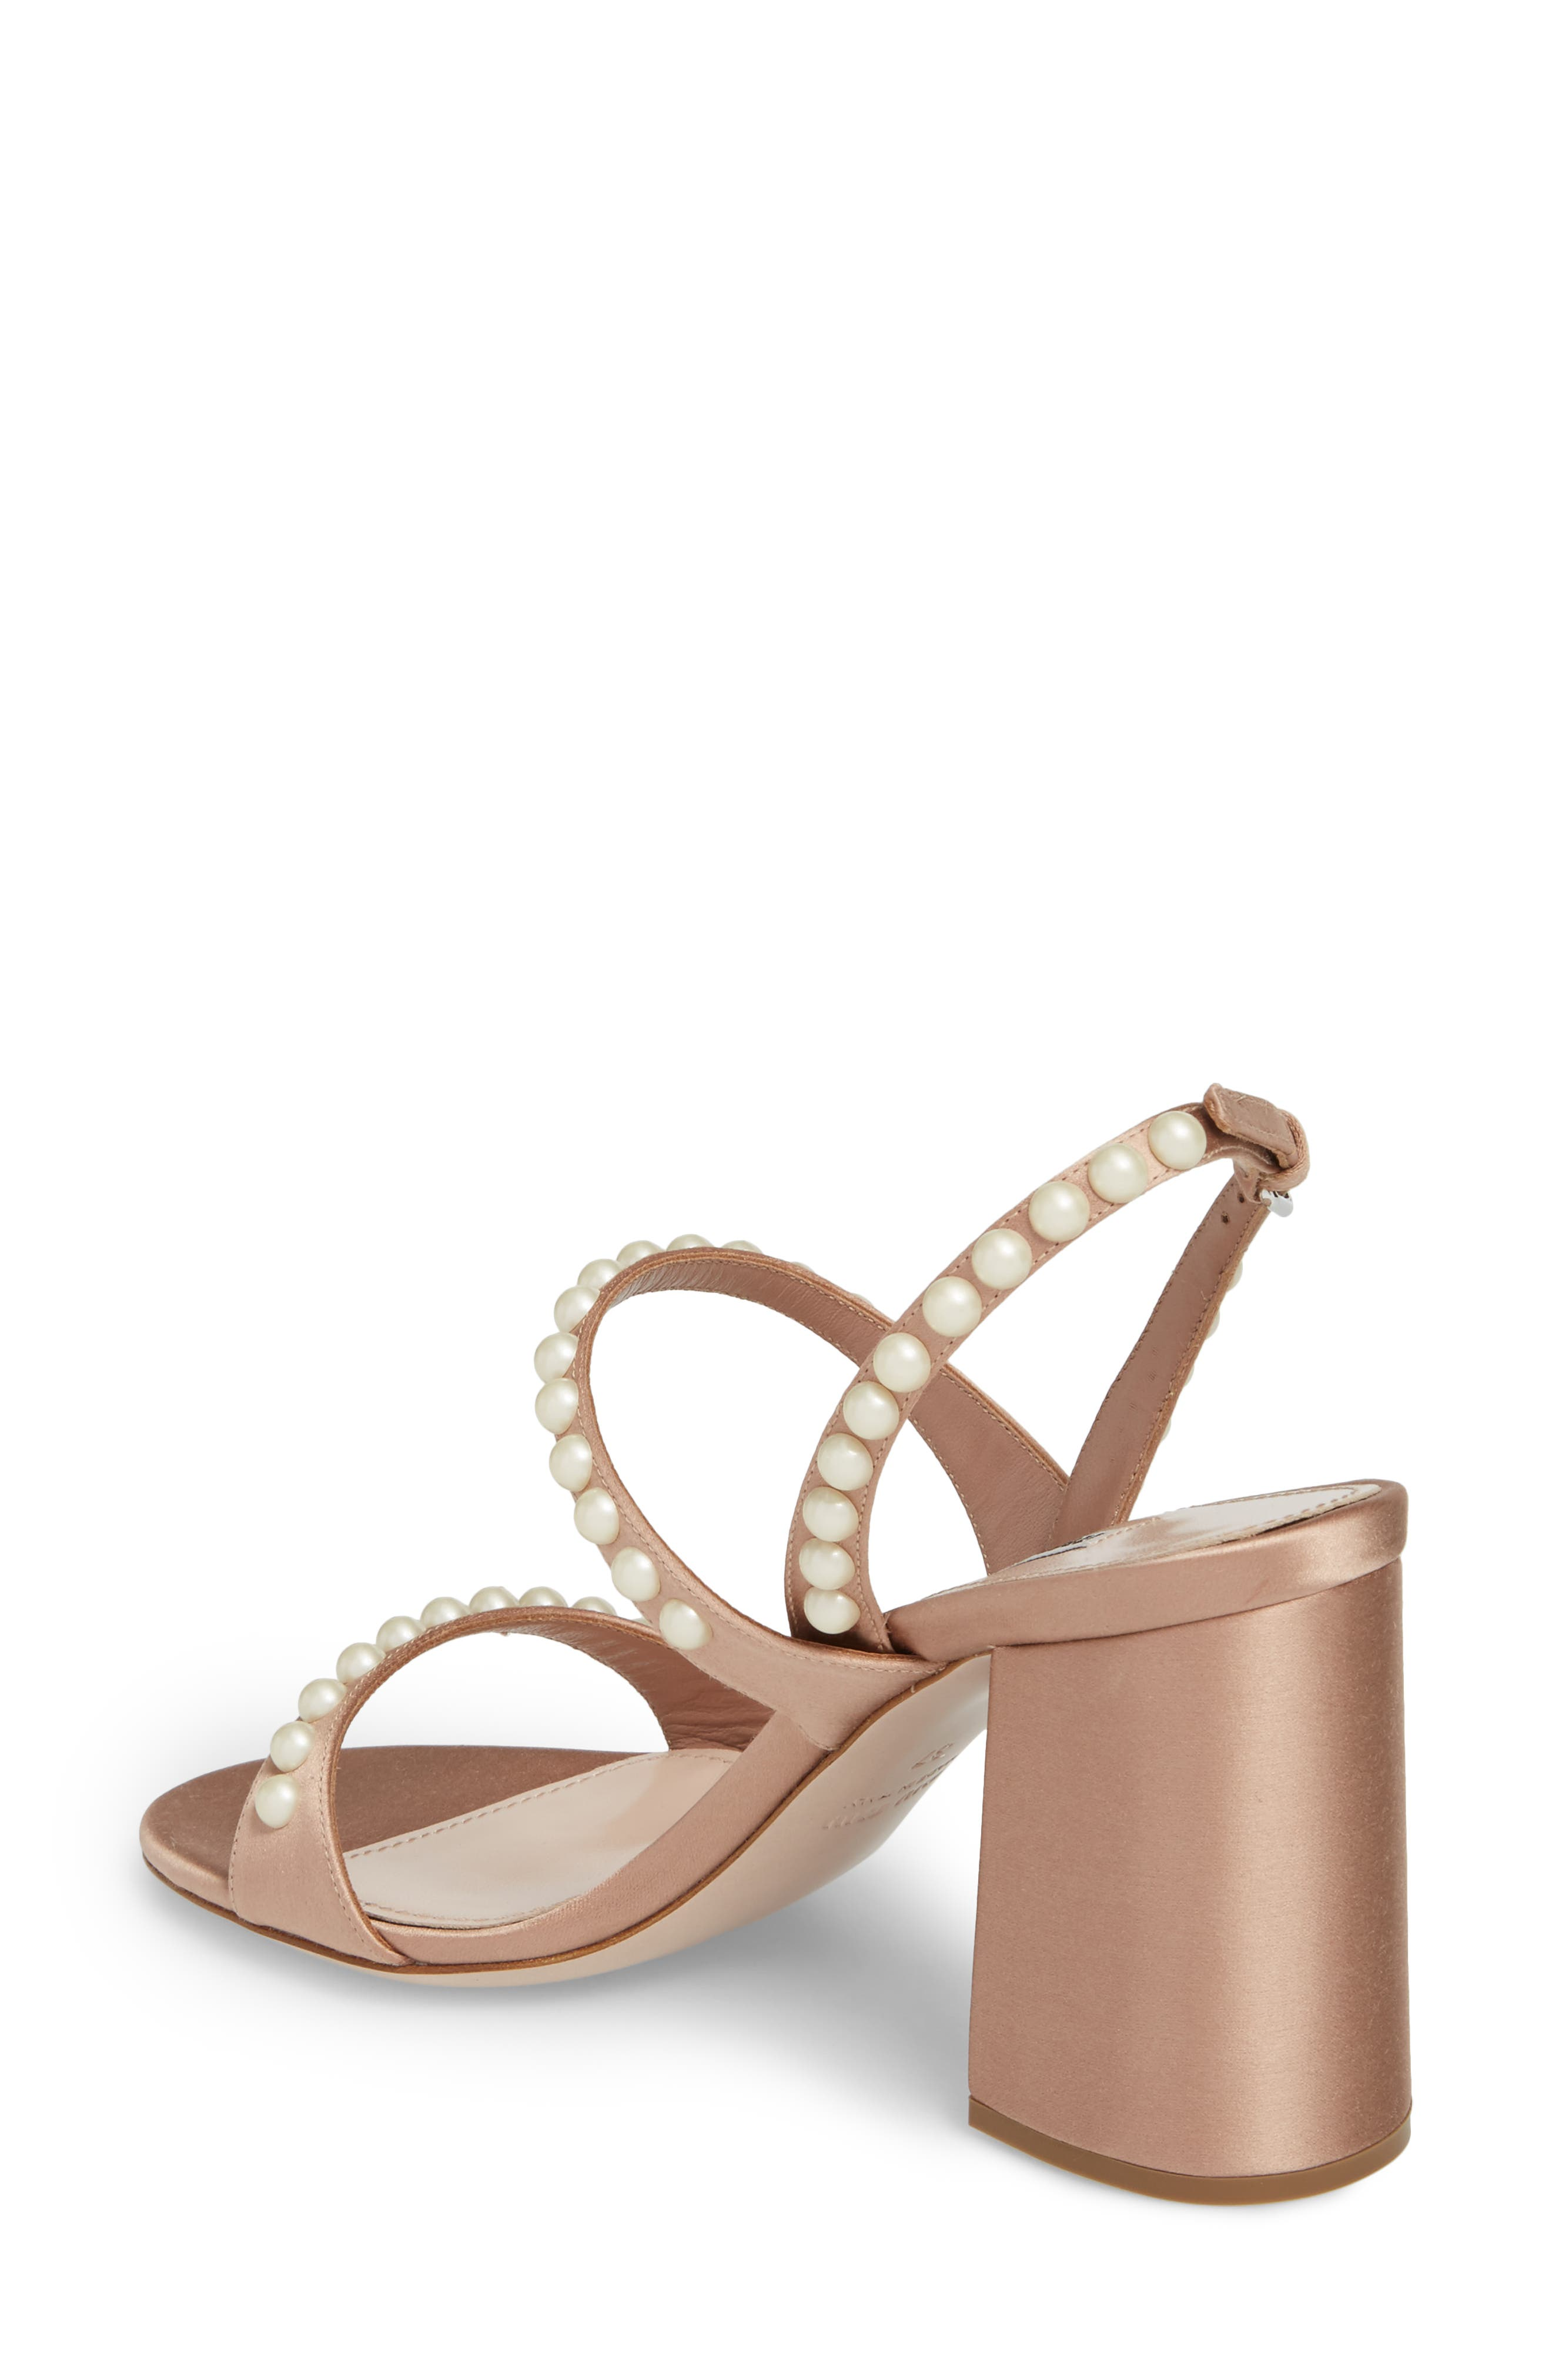 Imitation Pearl Slingback Sandal,                             Alternate thumbnail 2, color,                             250